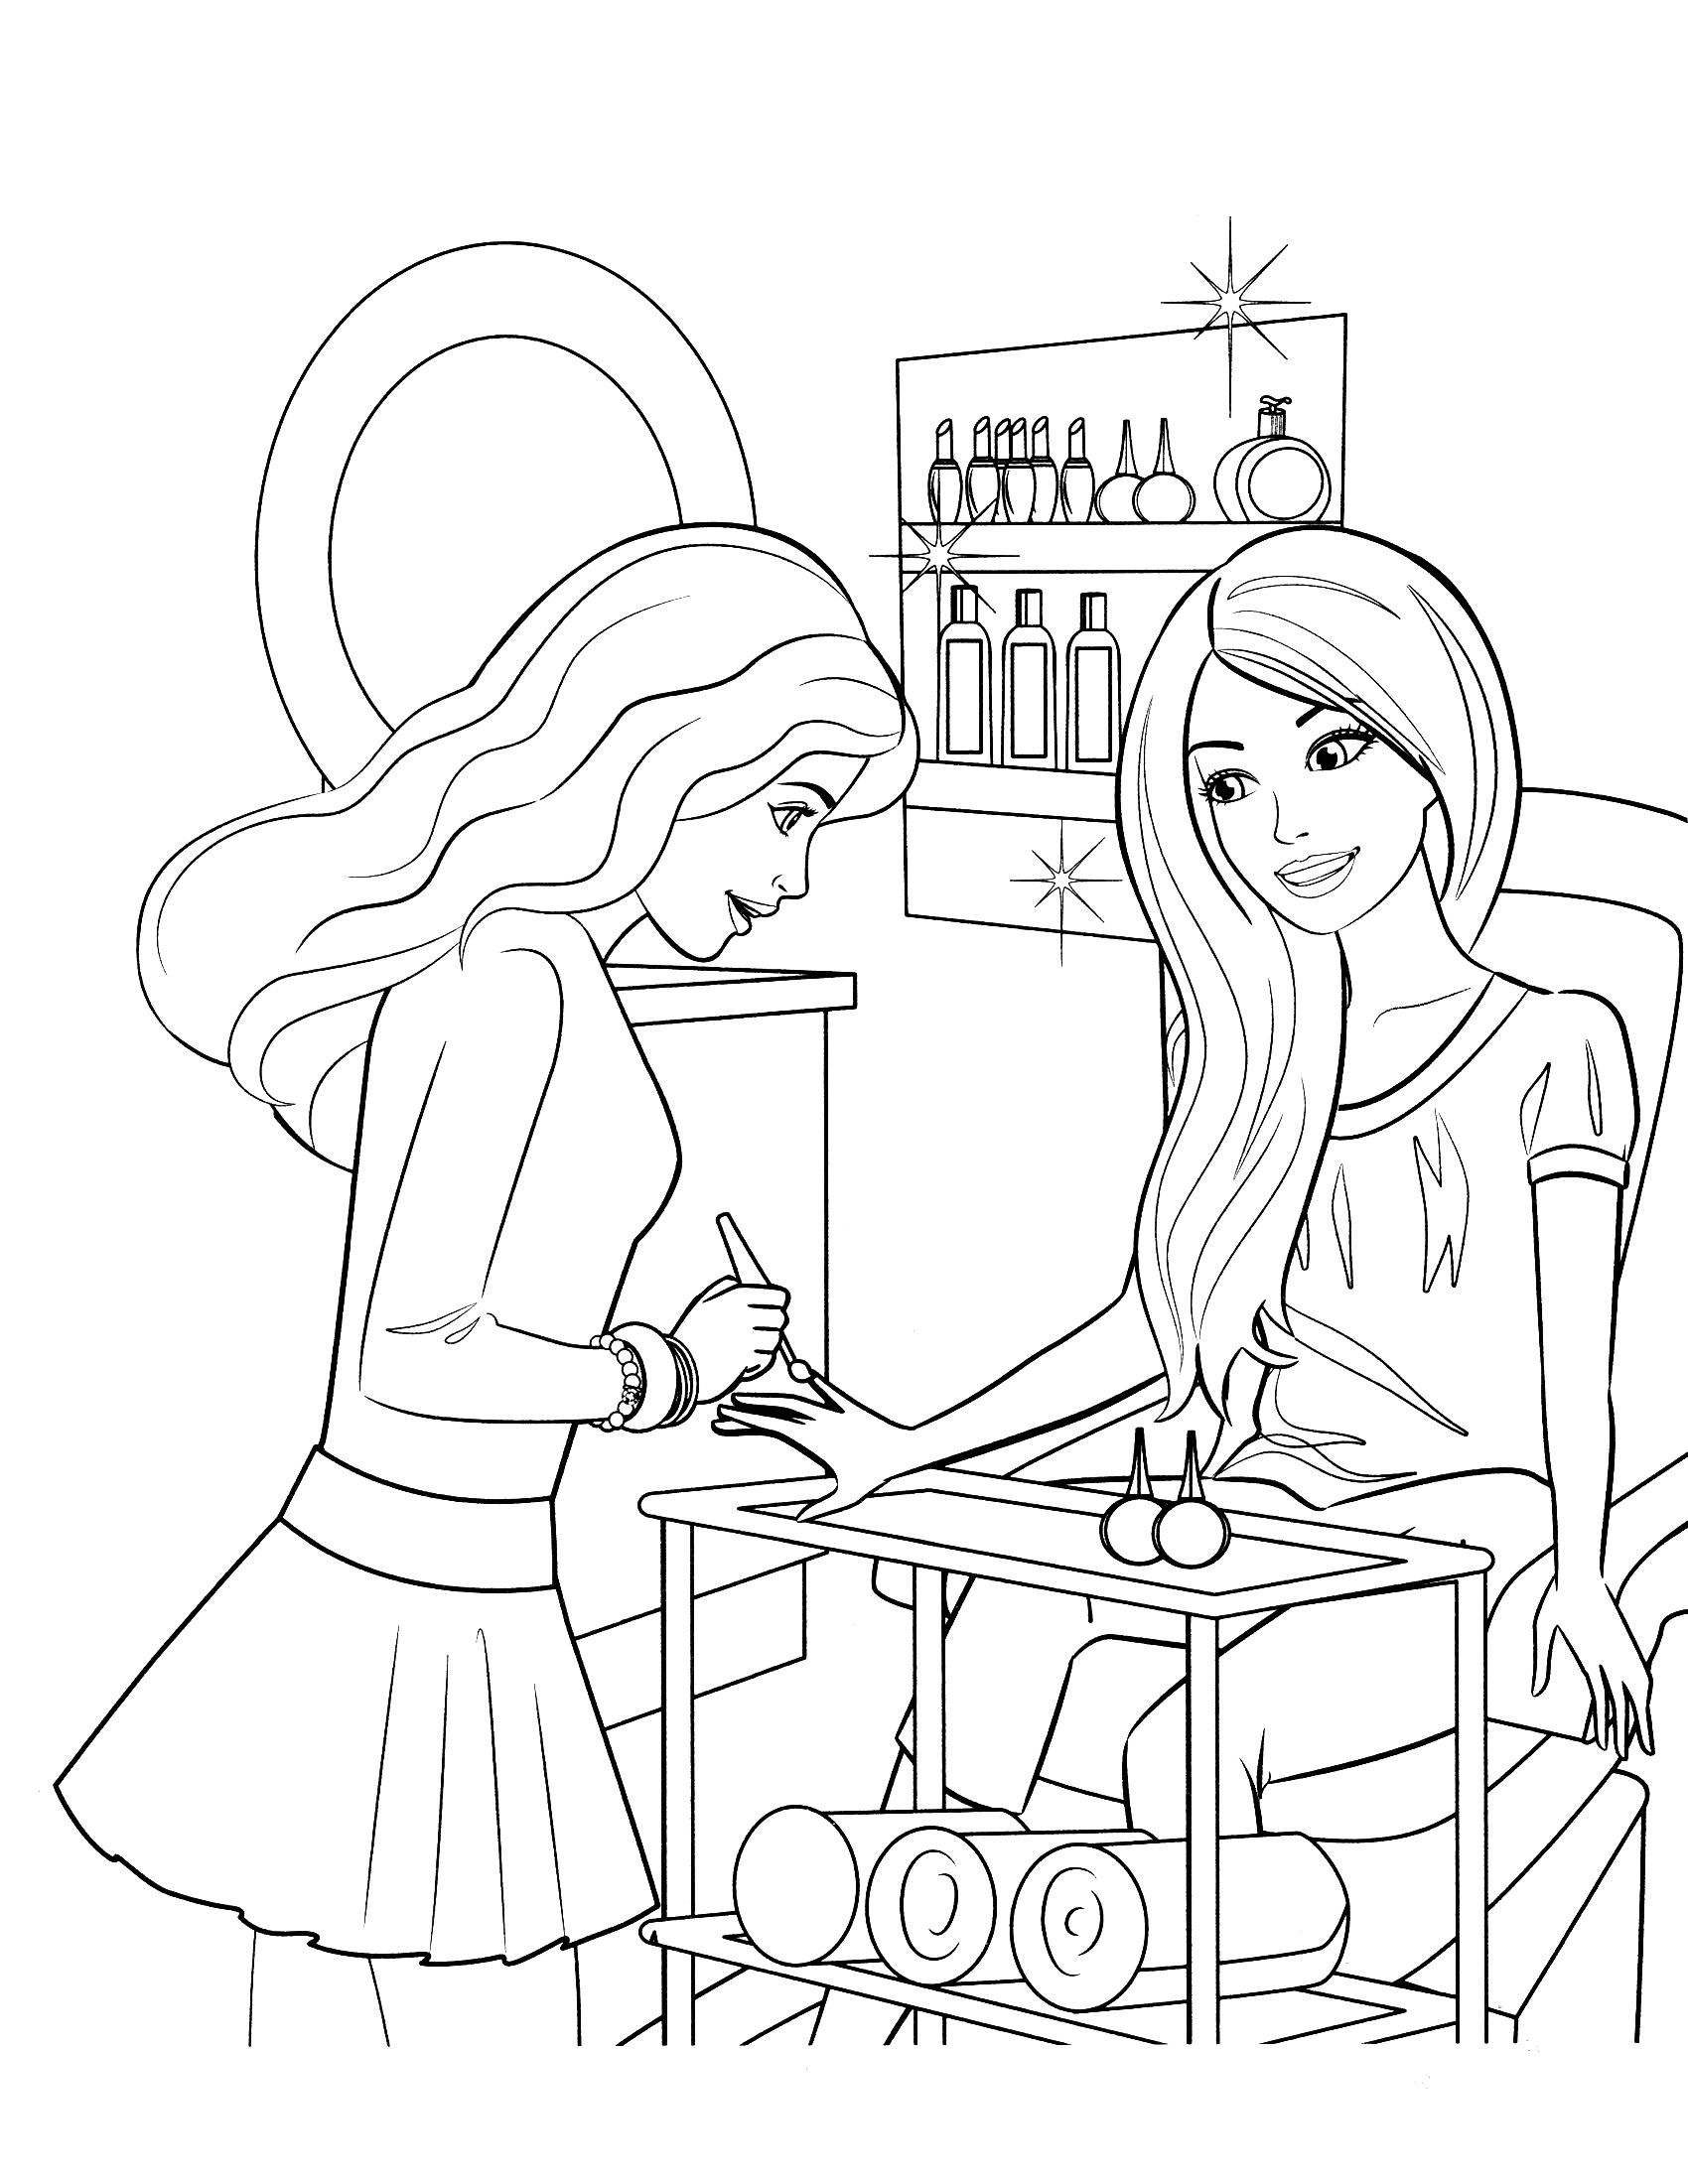 Free printable barbie coloring pages for kids barbie drawing pictures for kids colouring